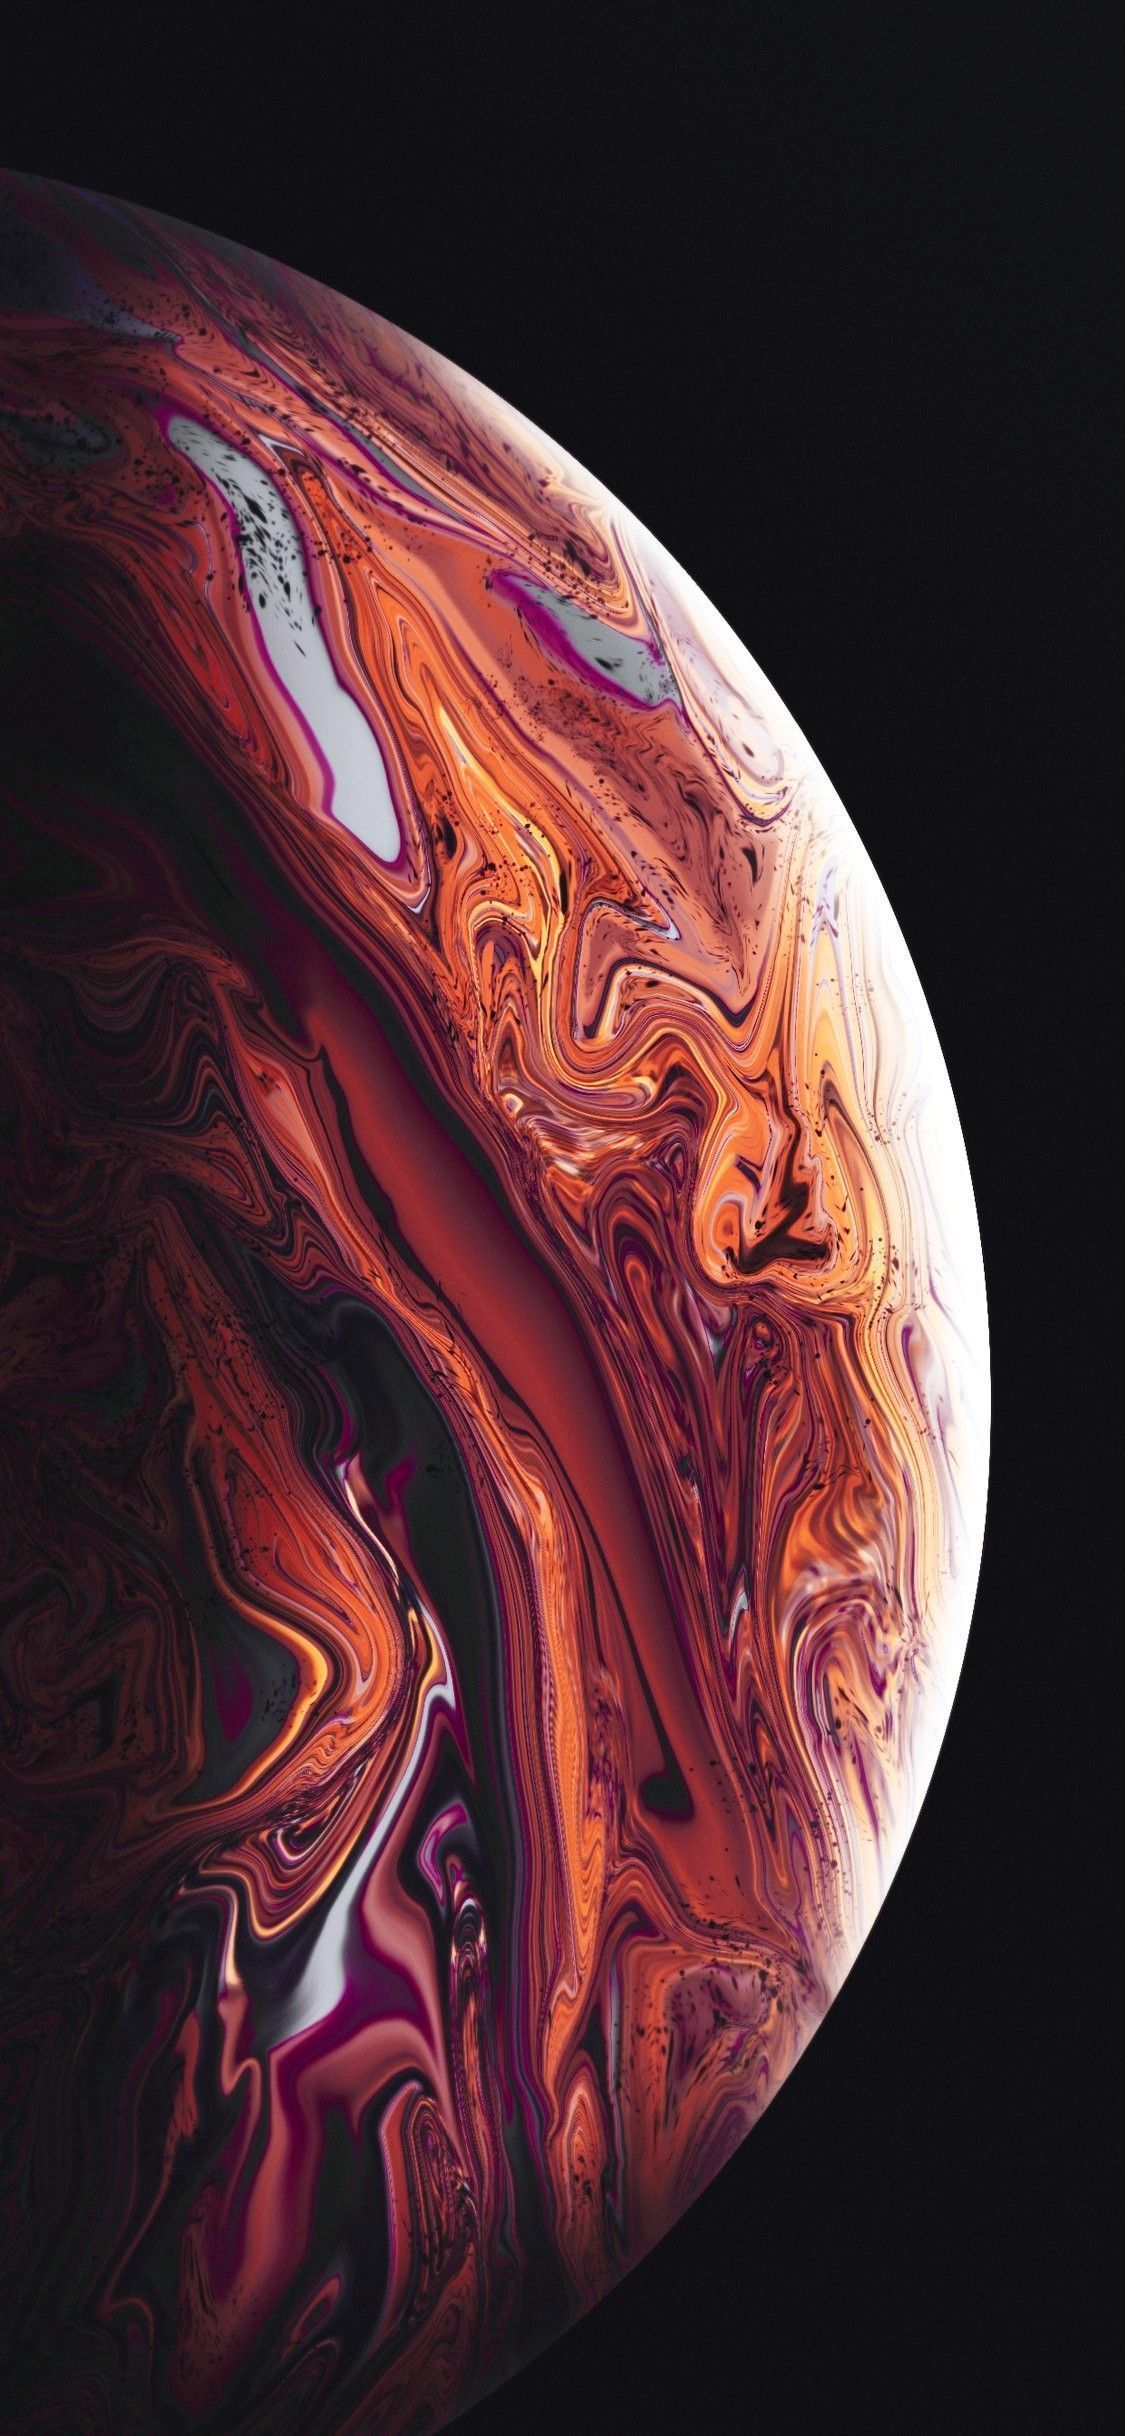 99 Telephone Hd Wallpapers Space Iphone Wallpaper Iphone Wallpaper Hipster Apple Wallpaper Iphone